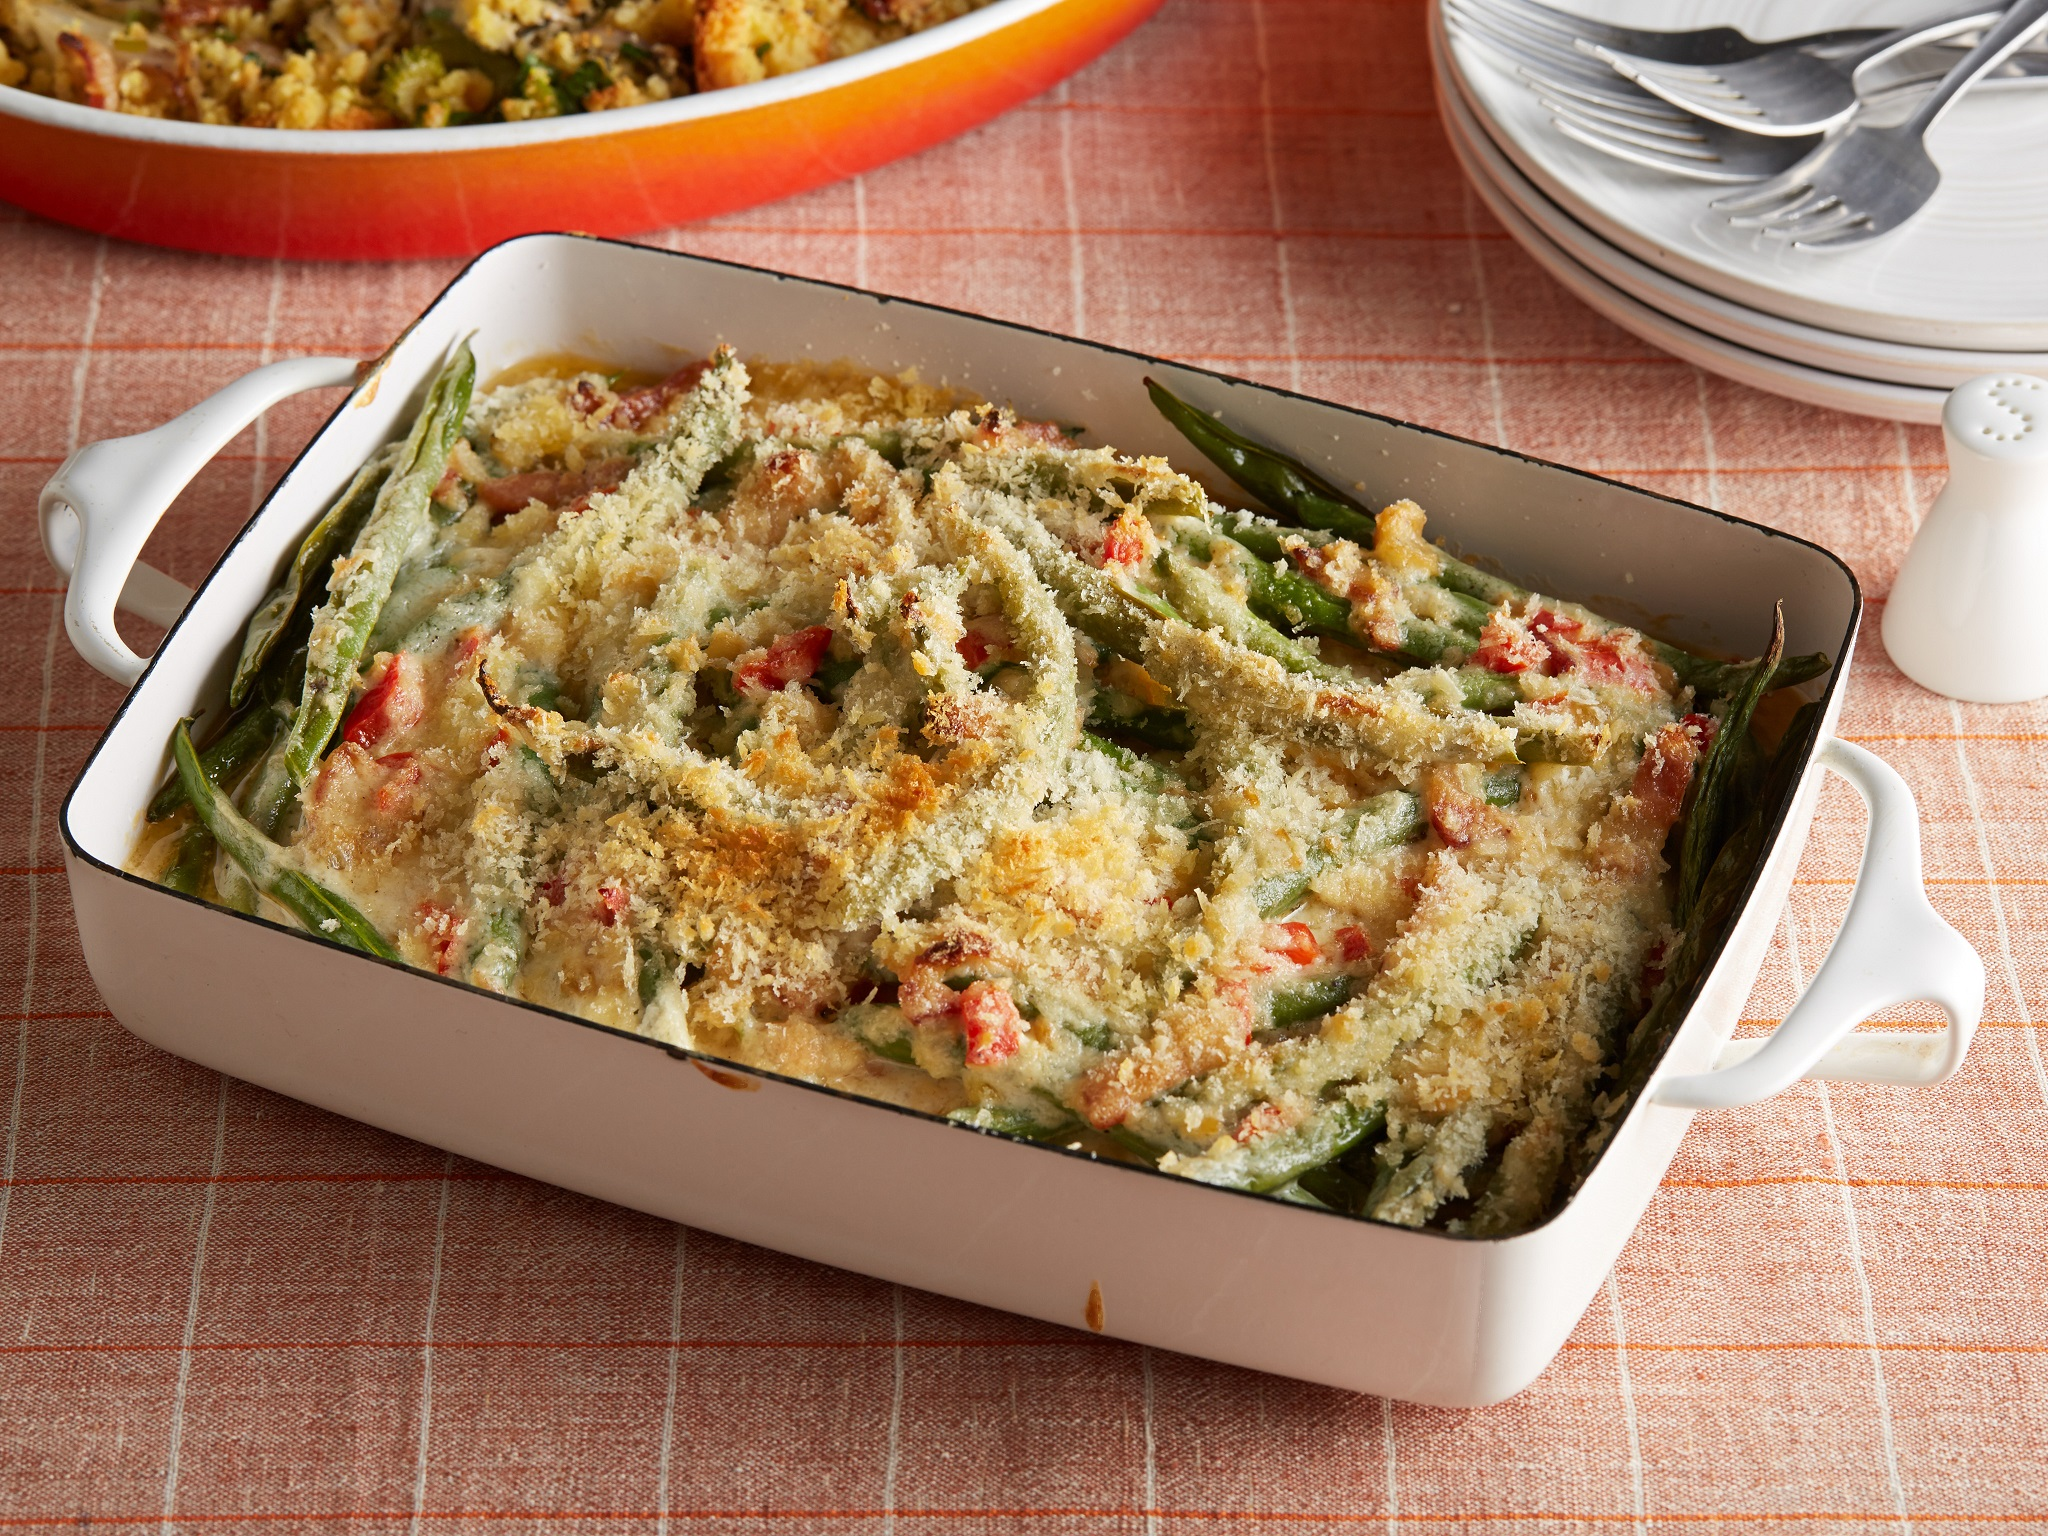 Ree Drummond's Green Bean Casserole (Photo courtesy Food Network's Th...